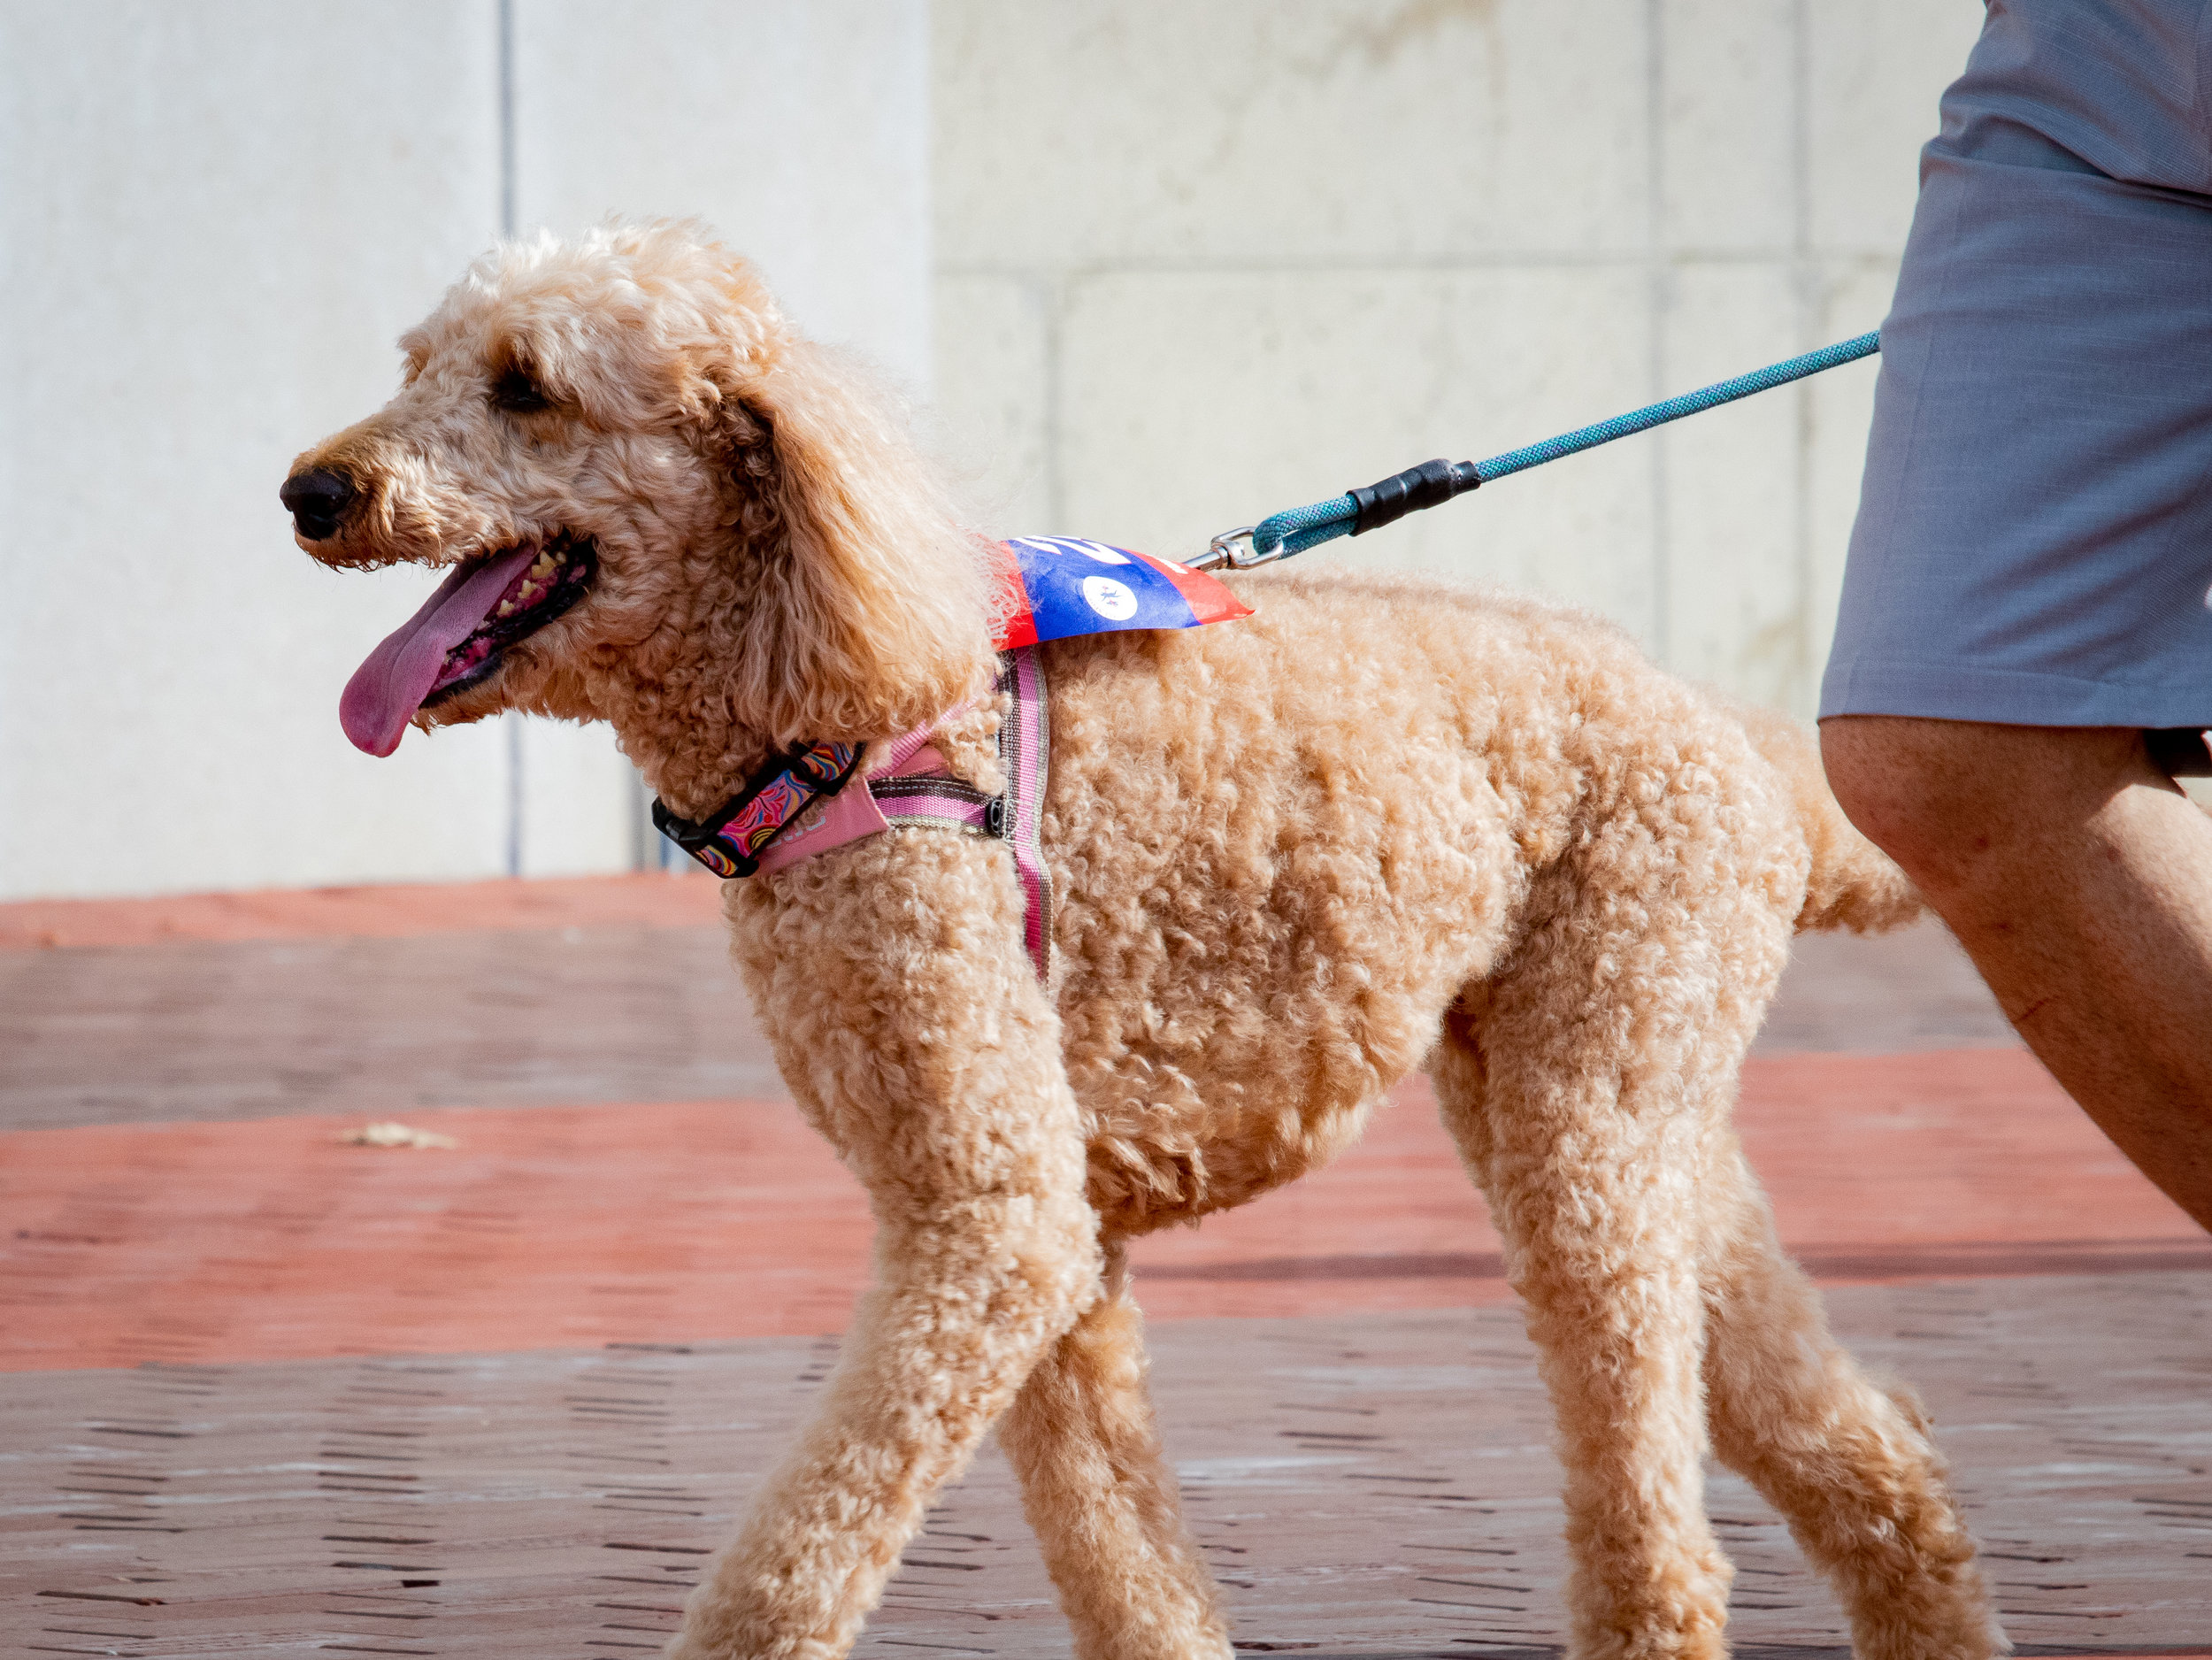 Lizzy the poodle participates in the 5K Fun Run at the Ohio State University.